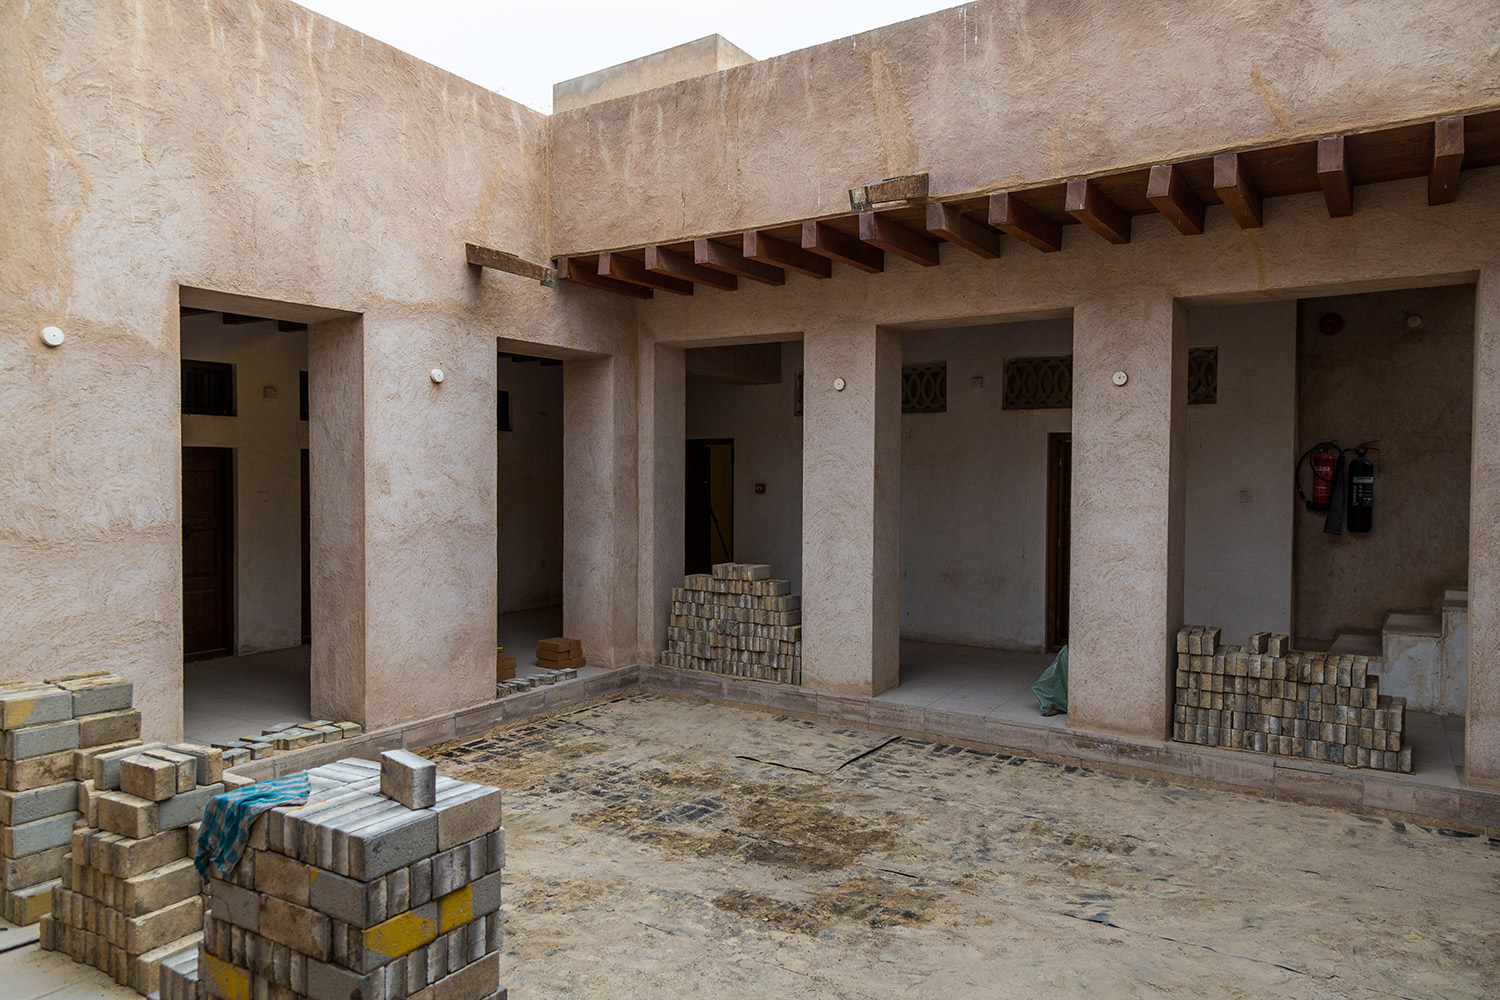 Deinstalling artwork, 2017  Courtyard, House 33, Al Fahidi Historical Neighbourhood, Dubai